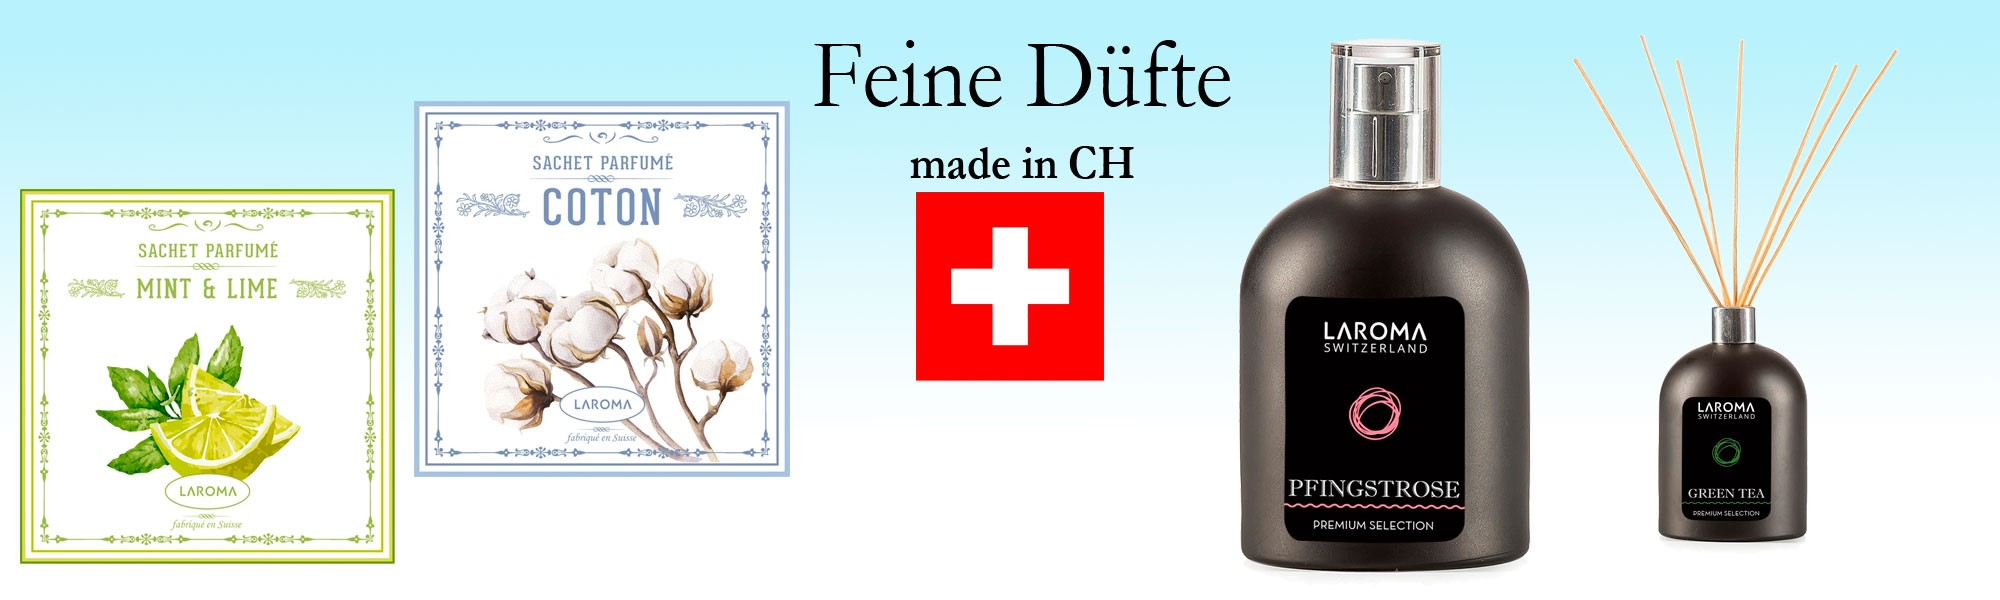 Feine Düfte made in CH